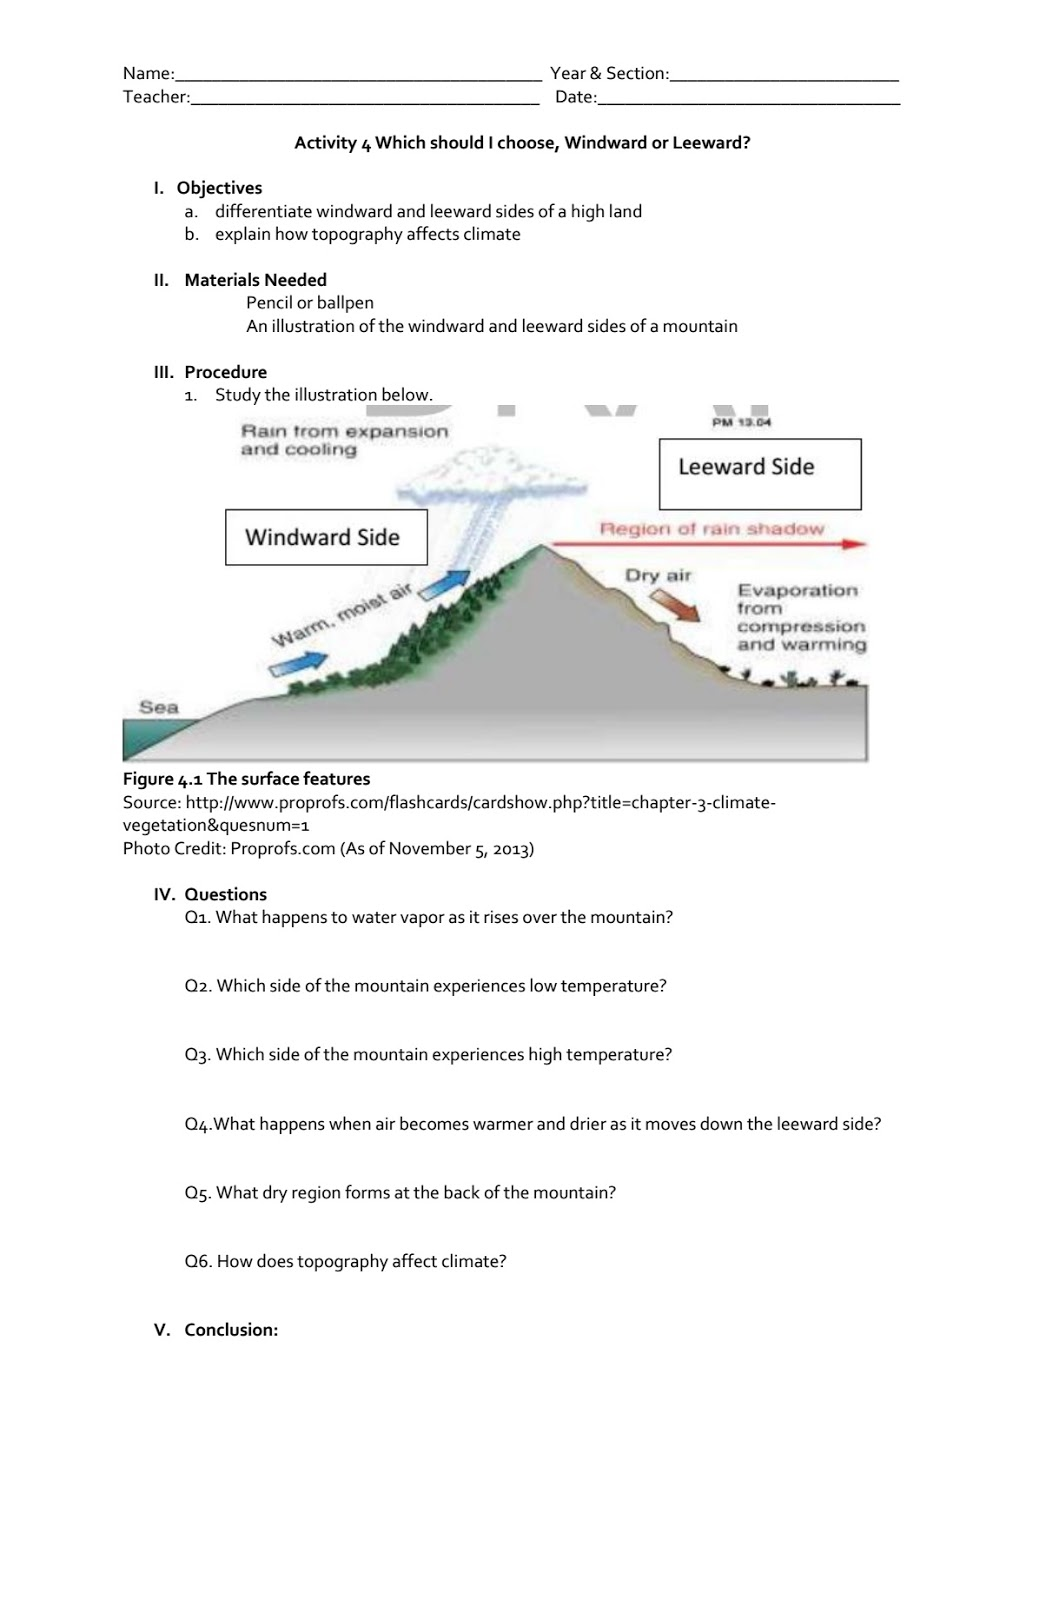 Science Concepts And Questions K To 12 Climate Activities